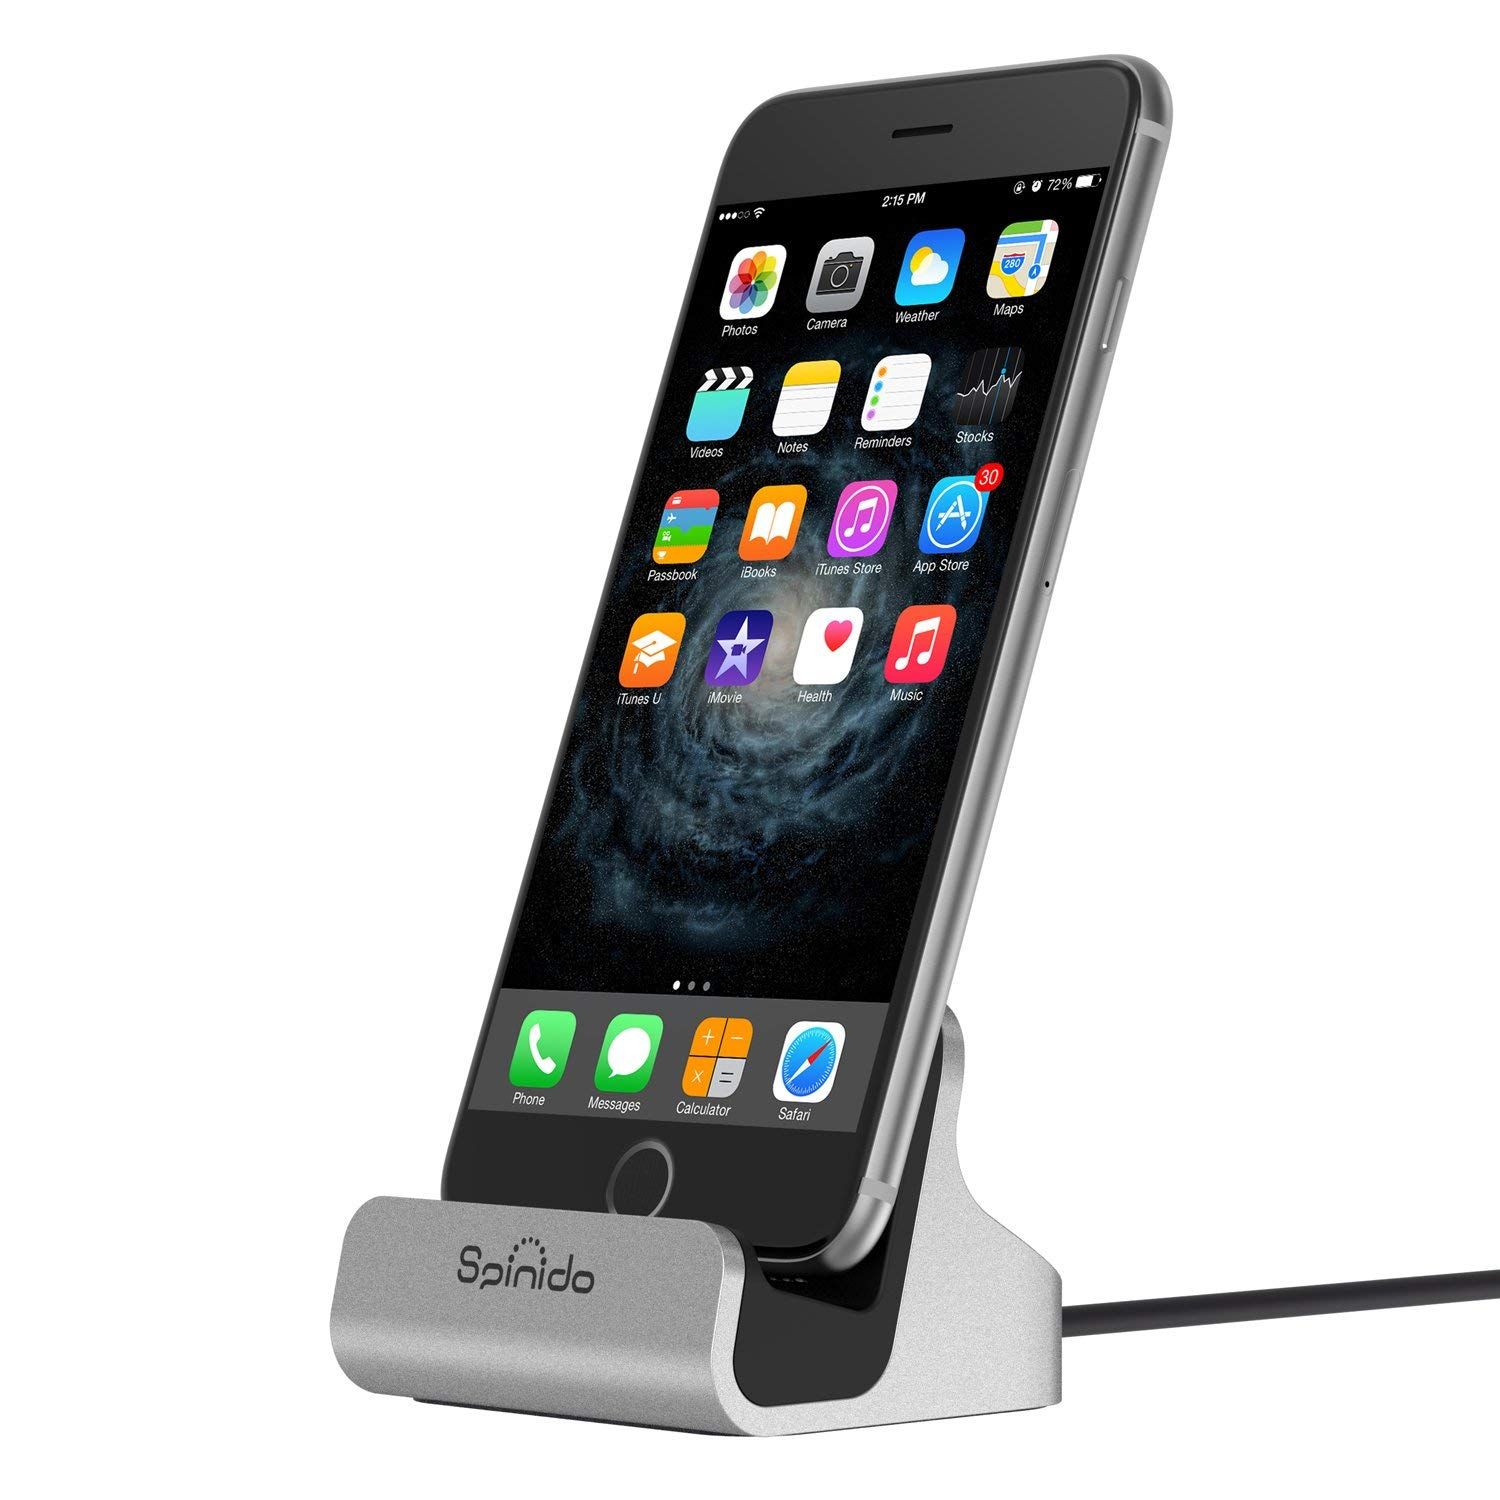 Spinido ChargeSync Charging Dock with Built-In Lightning Connector for iPhones